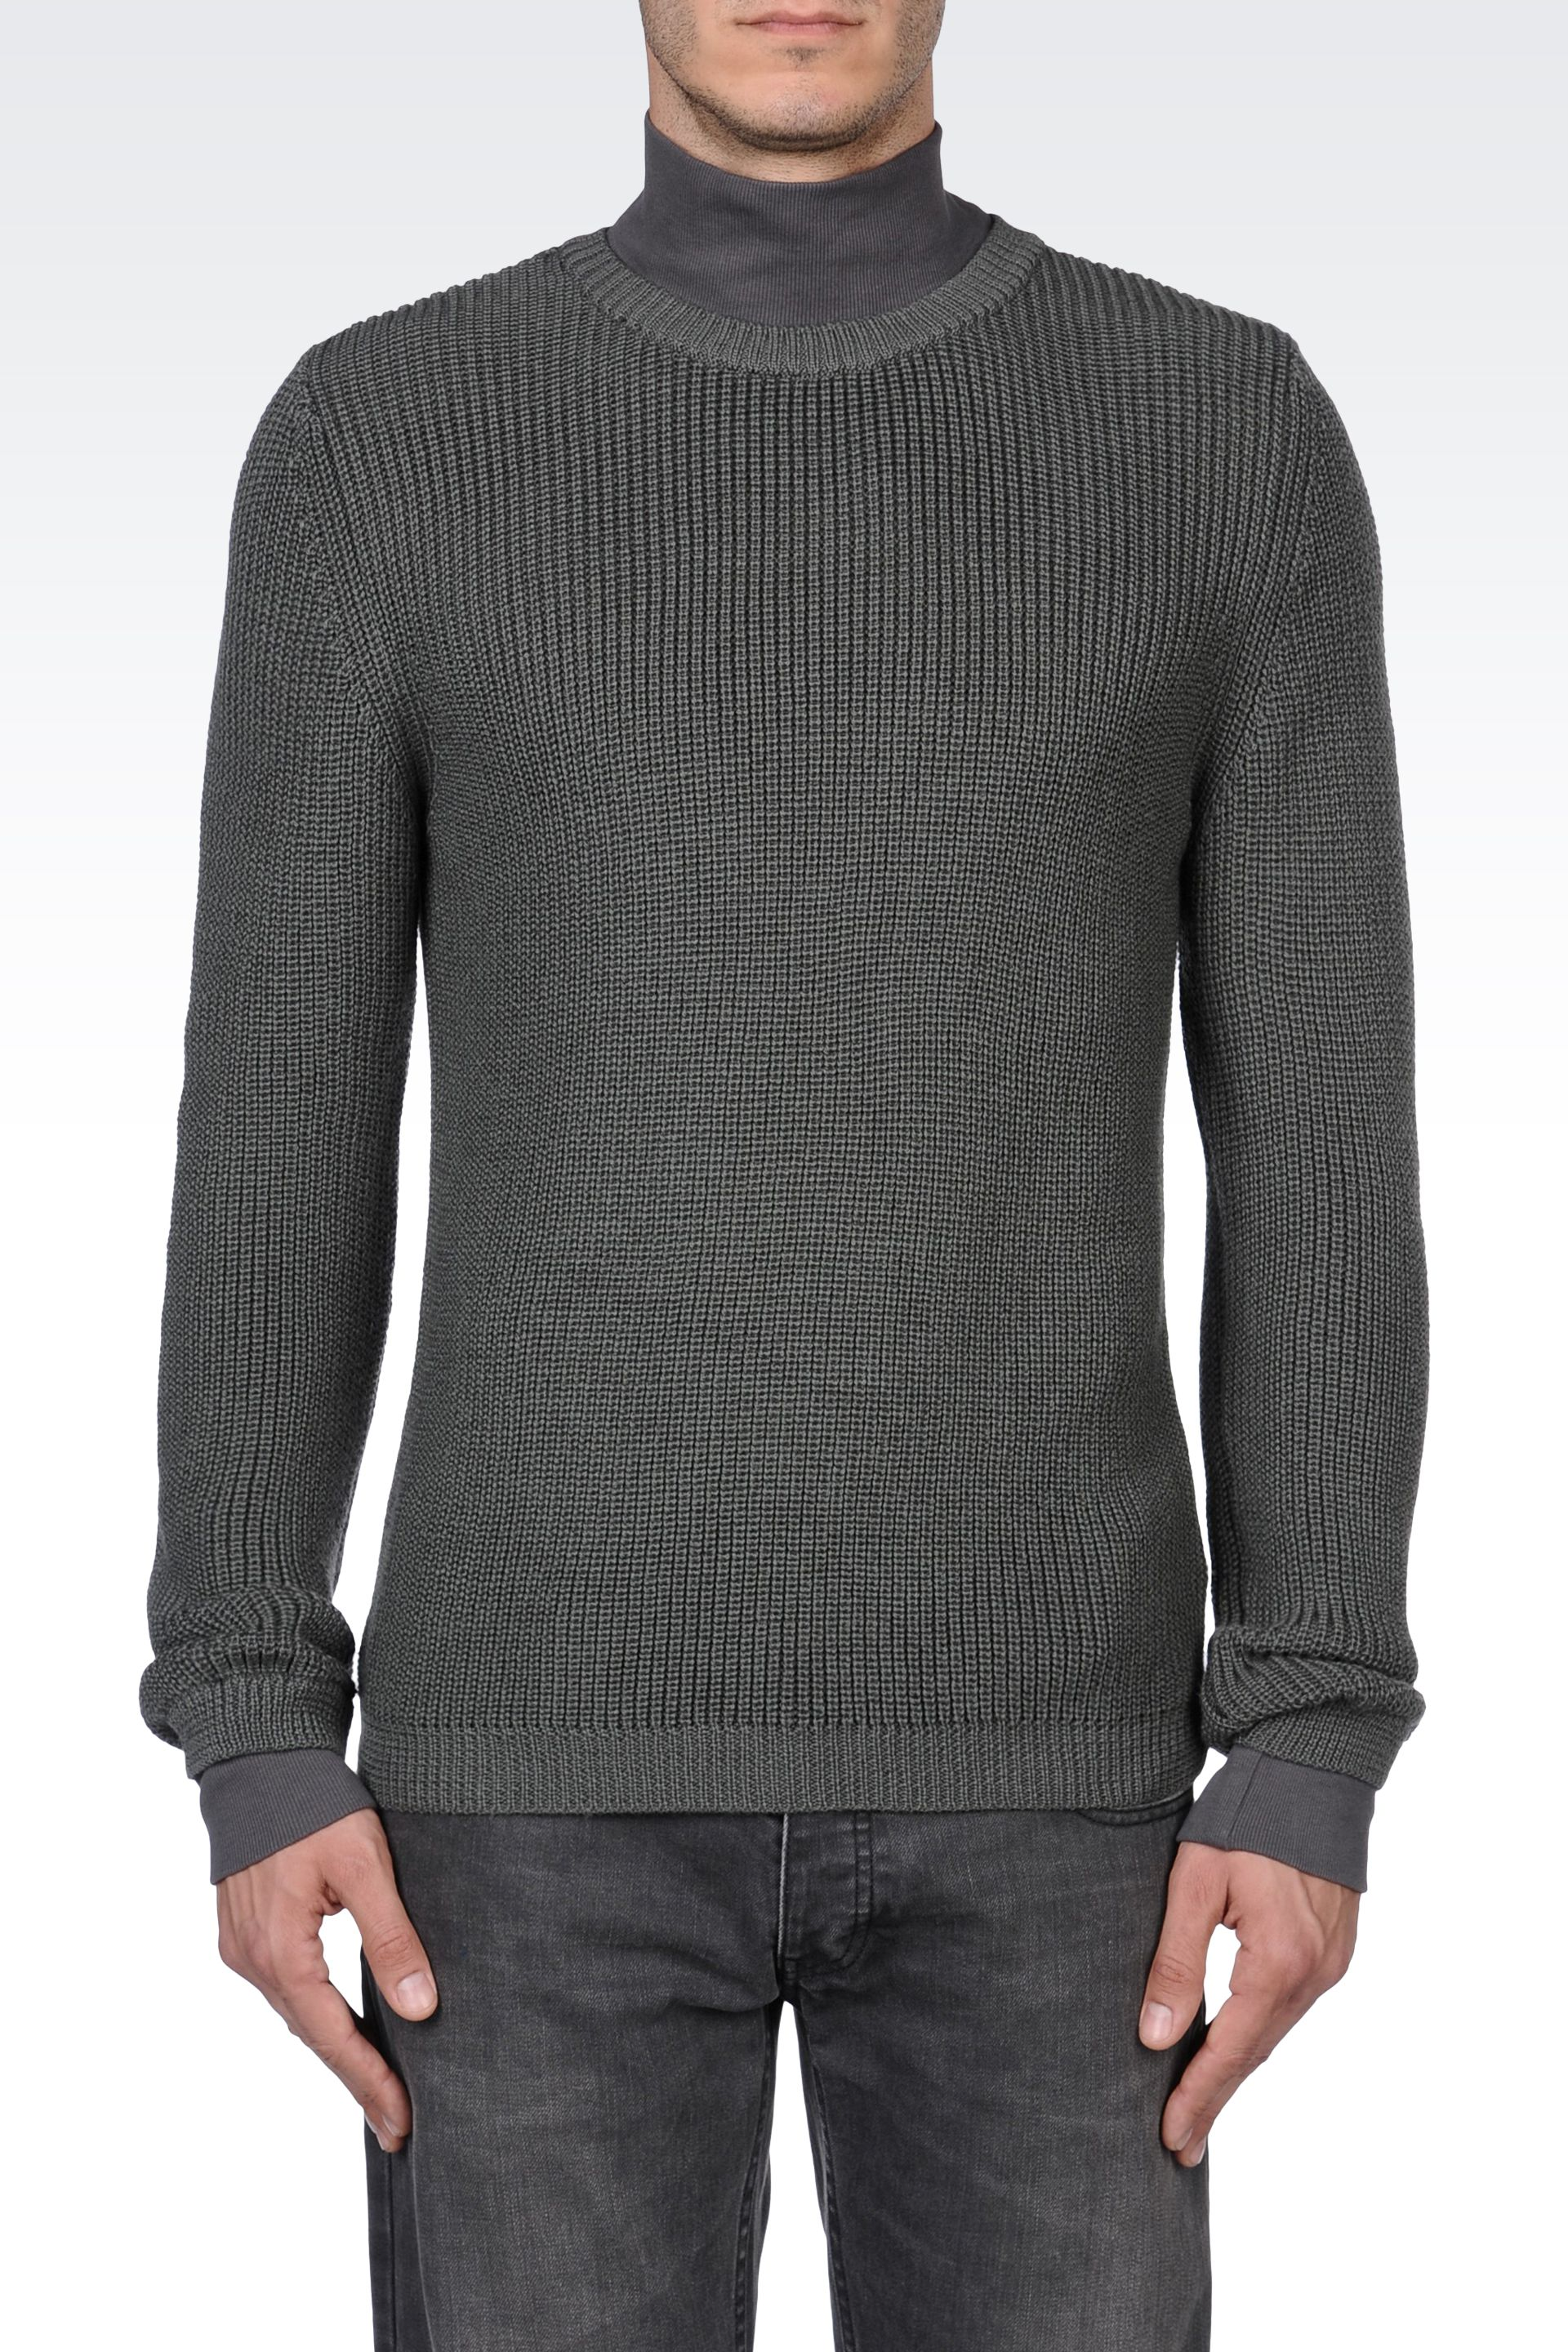 lyst emporio armani wool blend sweater with jersey collar in gray. Black Bedroom Furniture Sets. Home Design Ideas